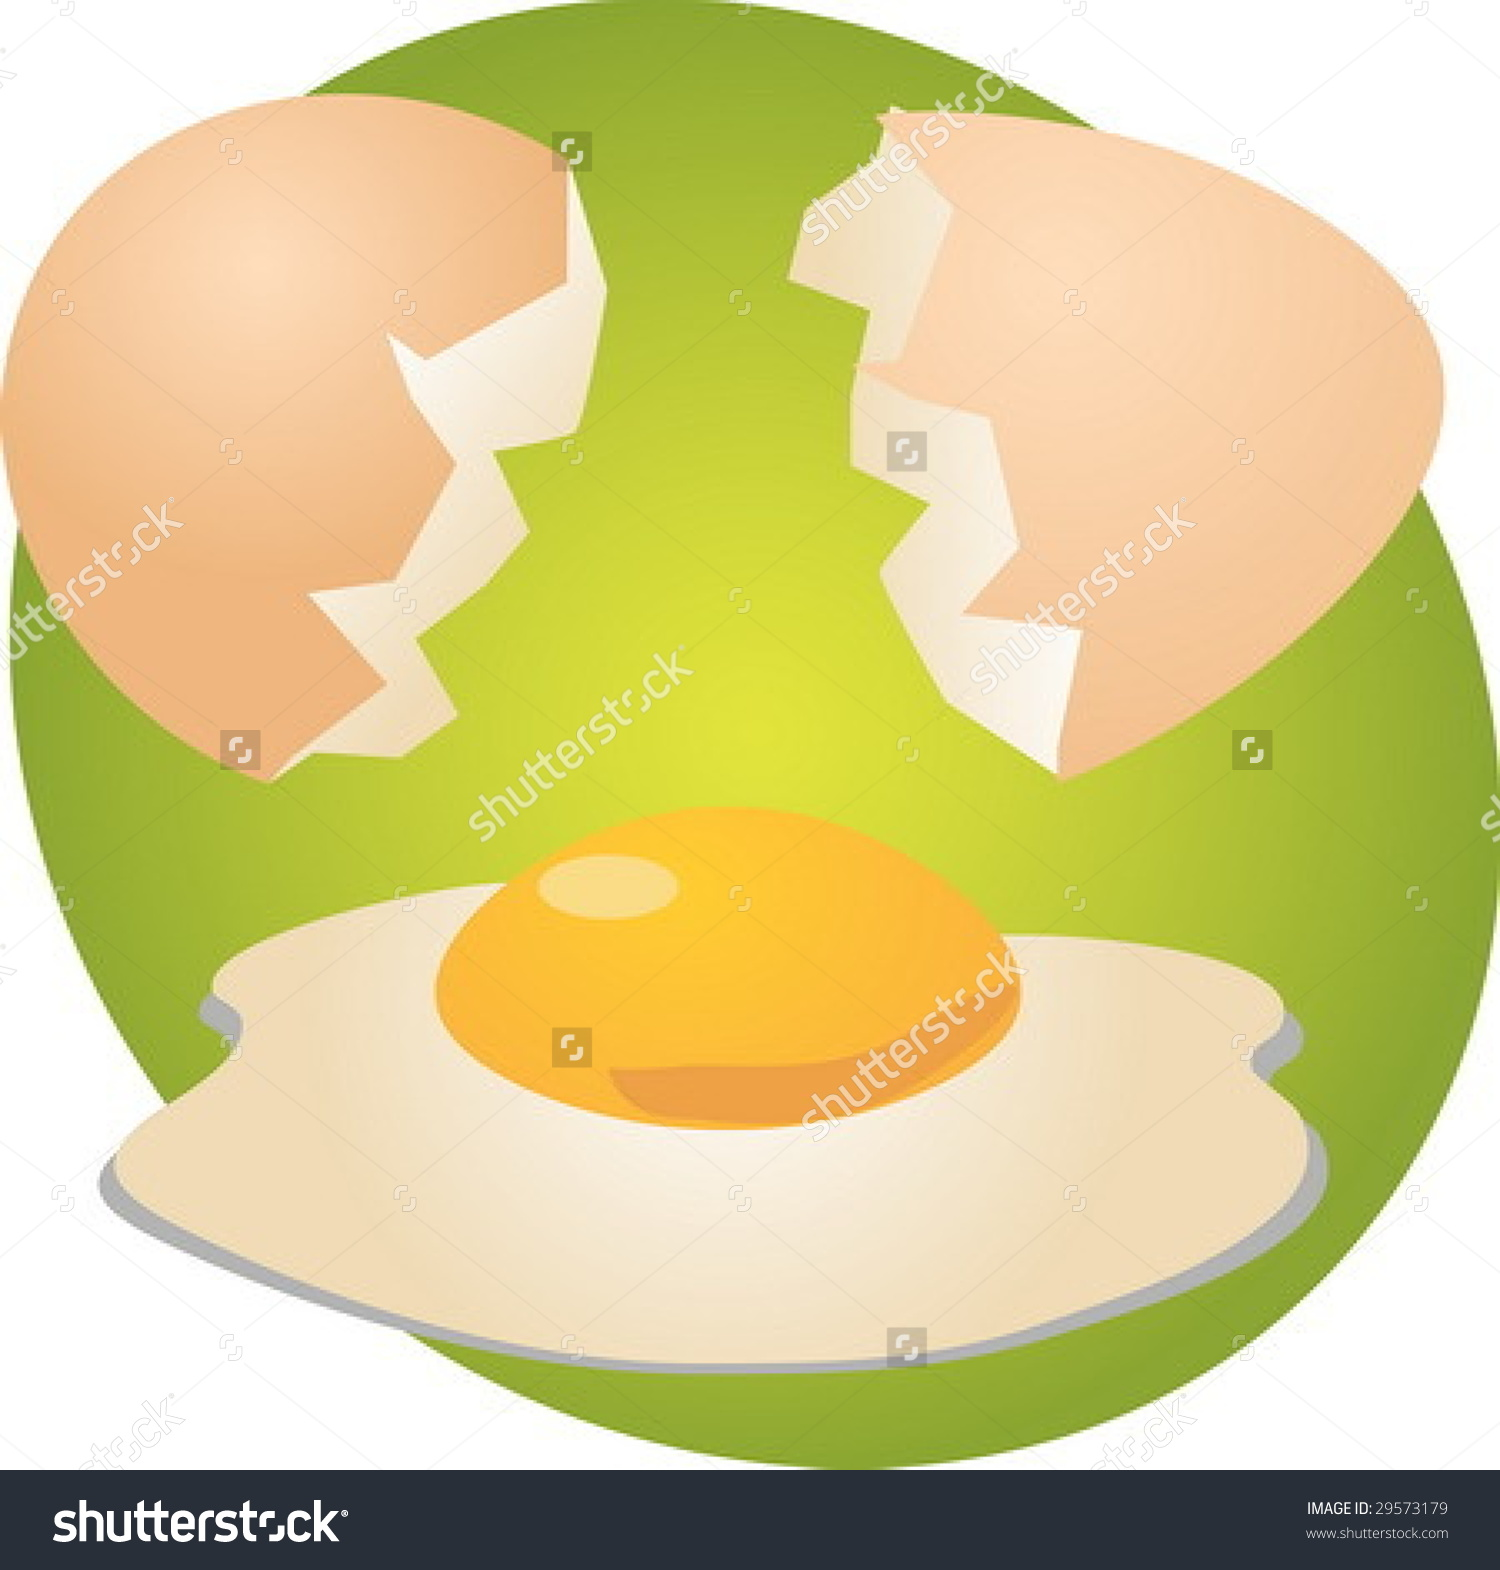 Clipart yolk graphic download Egg Illustration Clipart Open Shell Yolk Stock Vector 29573179 ... graphic download